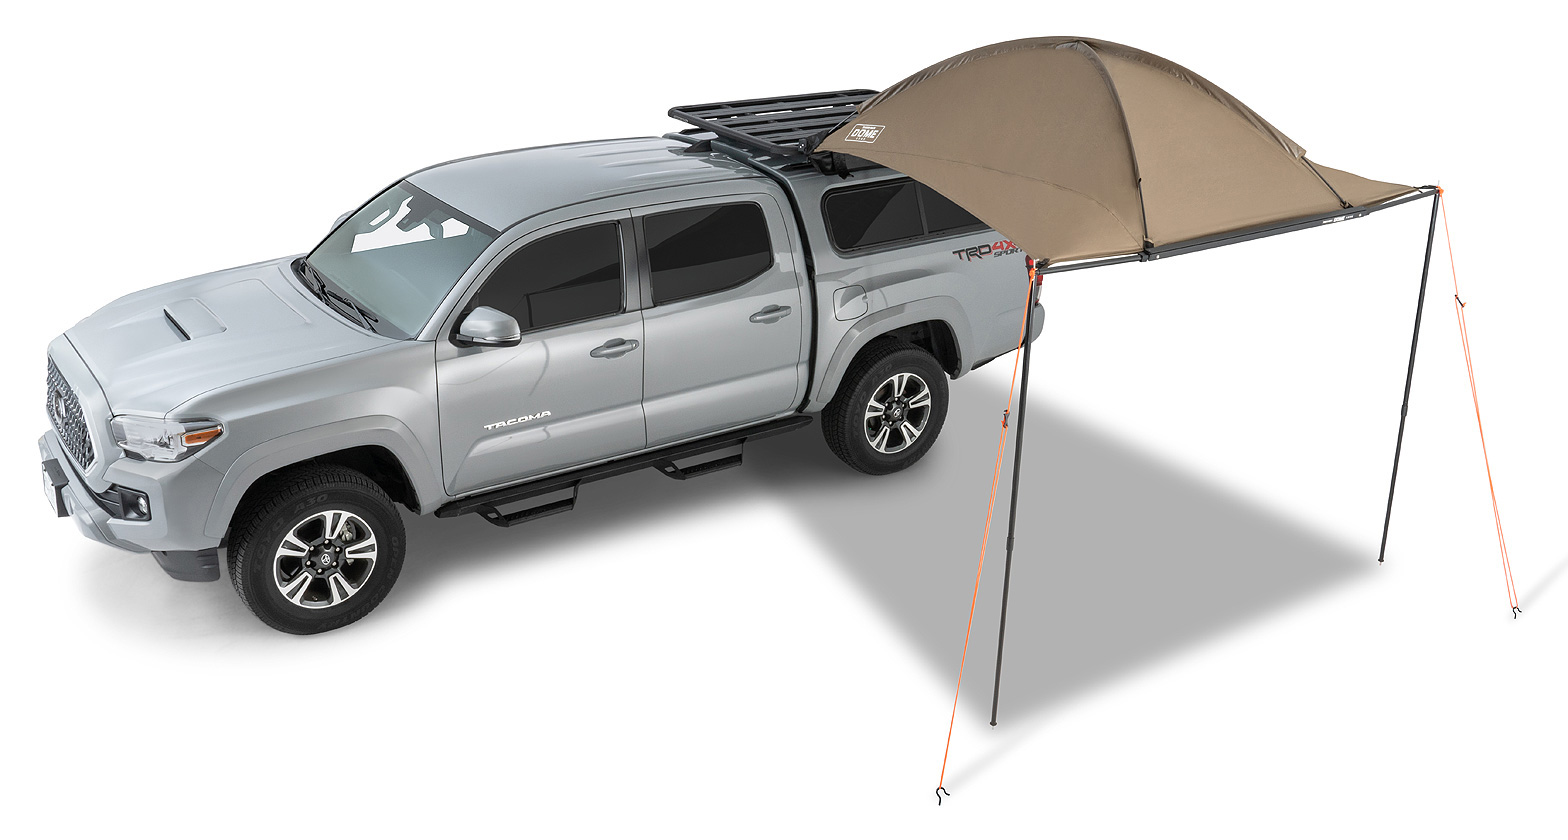 32125 Dome 1300 Awning Rhino Rack